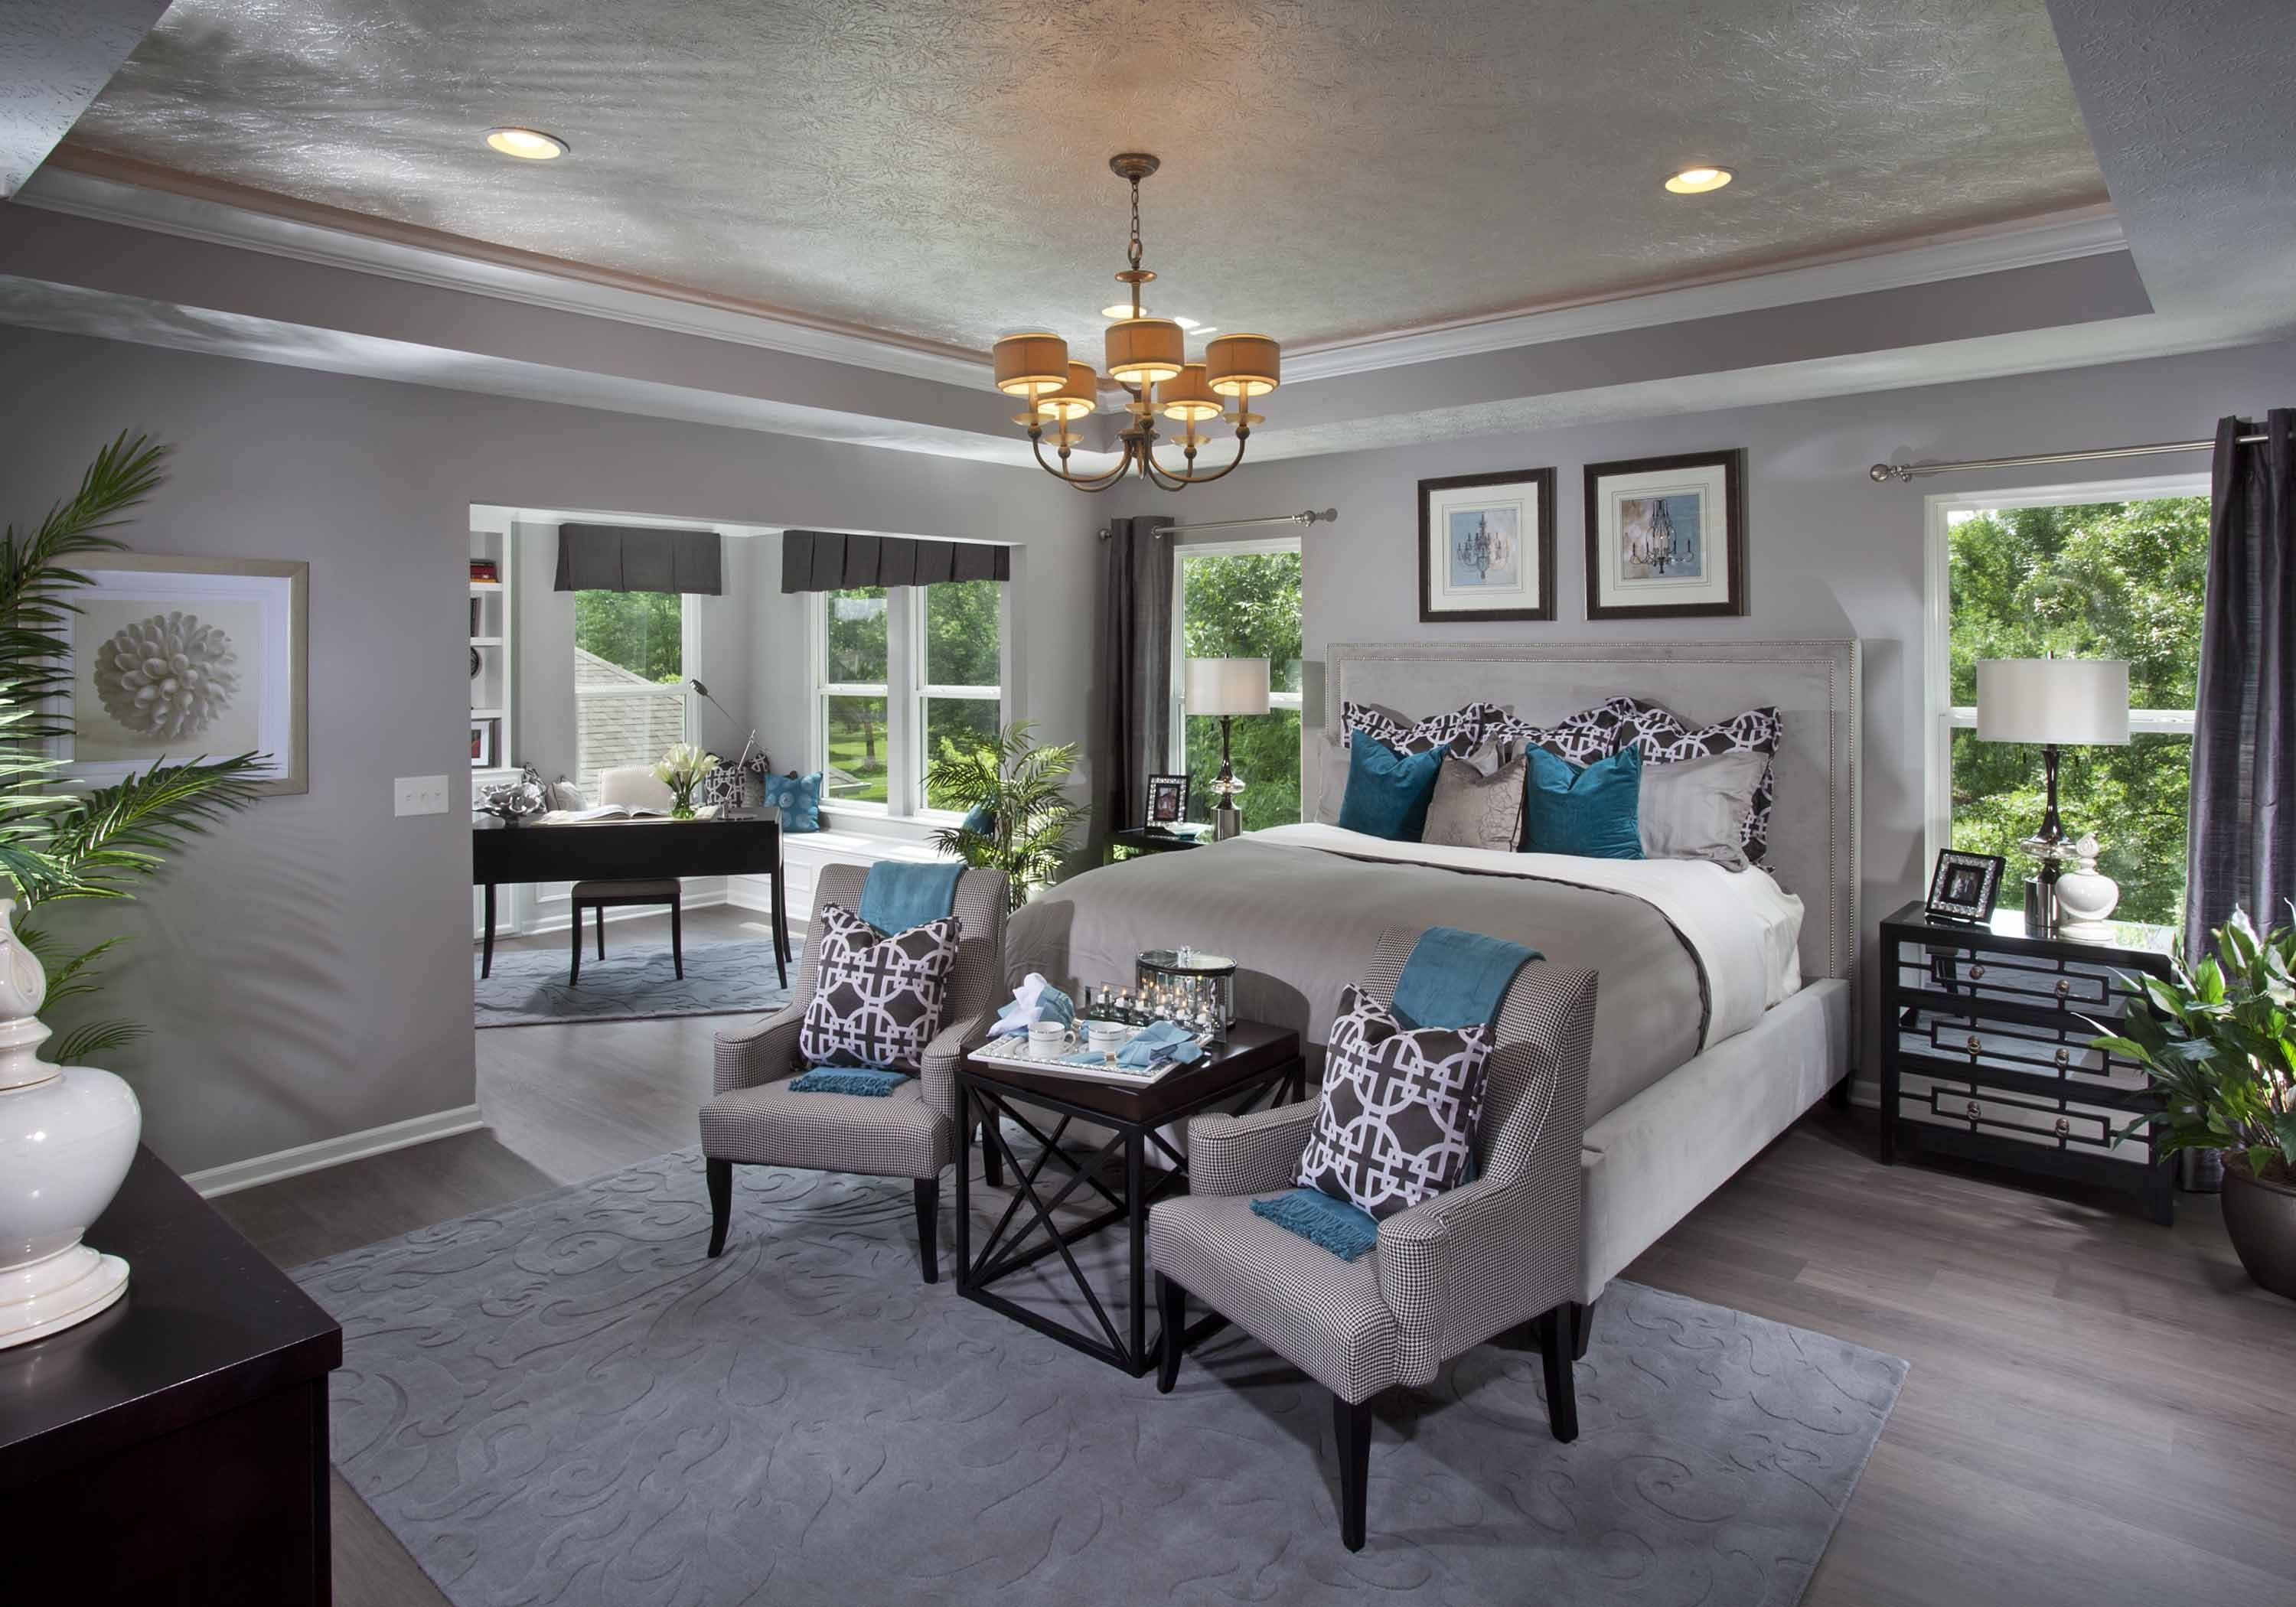 From The Dream Model Home We Saw I Like The Gray Walls With The Dark Furniture And Teal